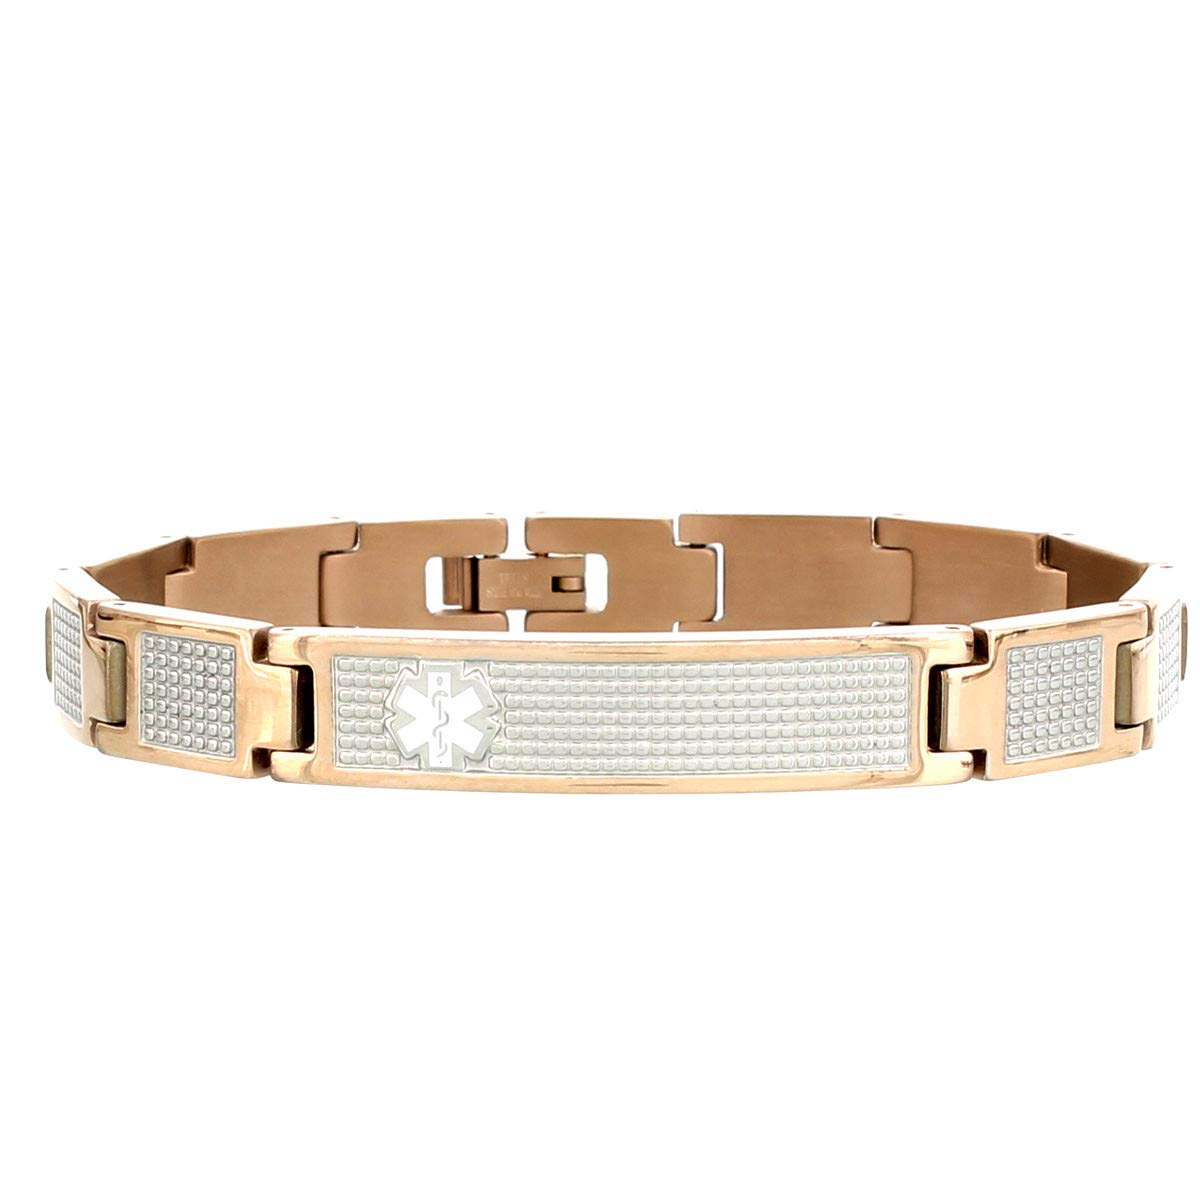 AMERICAN MEDICAL ID Lynx Shine Medical ID Bracelet Rose Gold Tone Over Stainless Steel, for 7 Wrist, 3 Lines Personalized Engraving Included